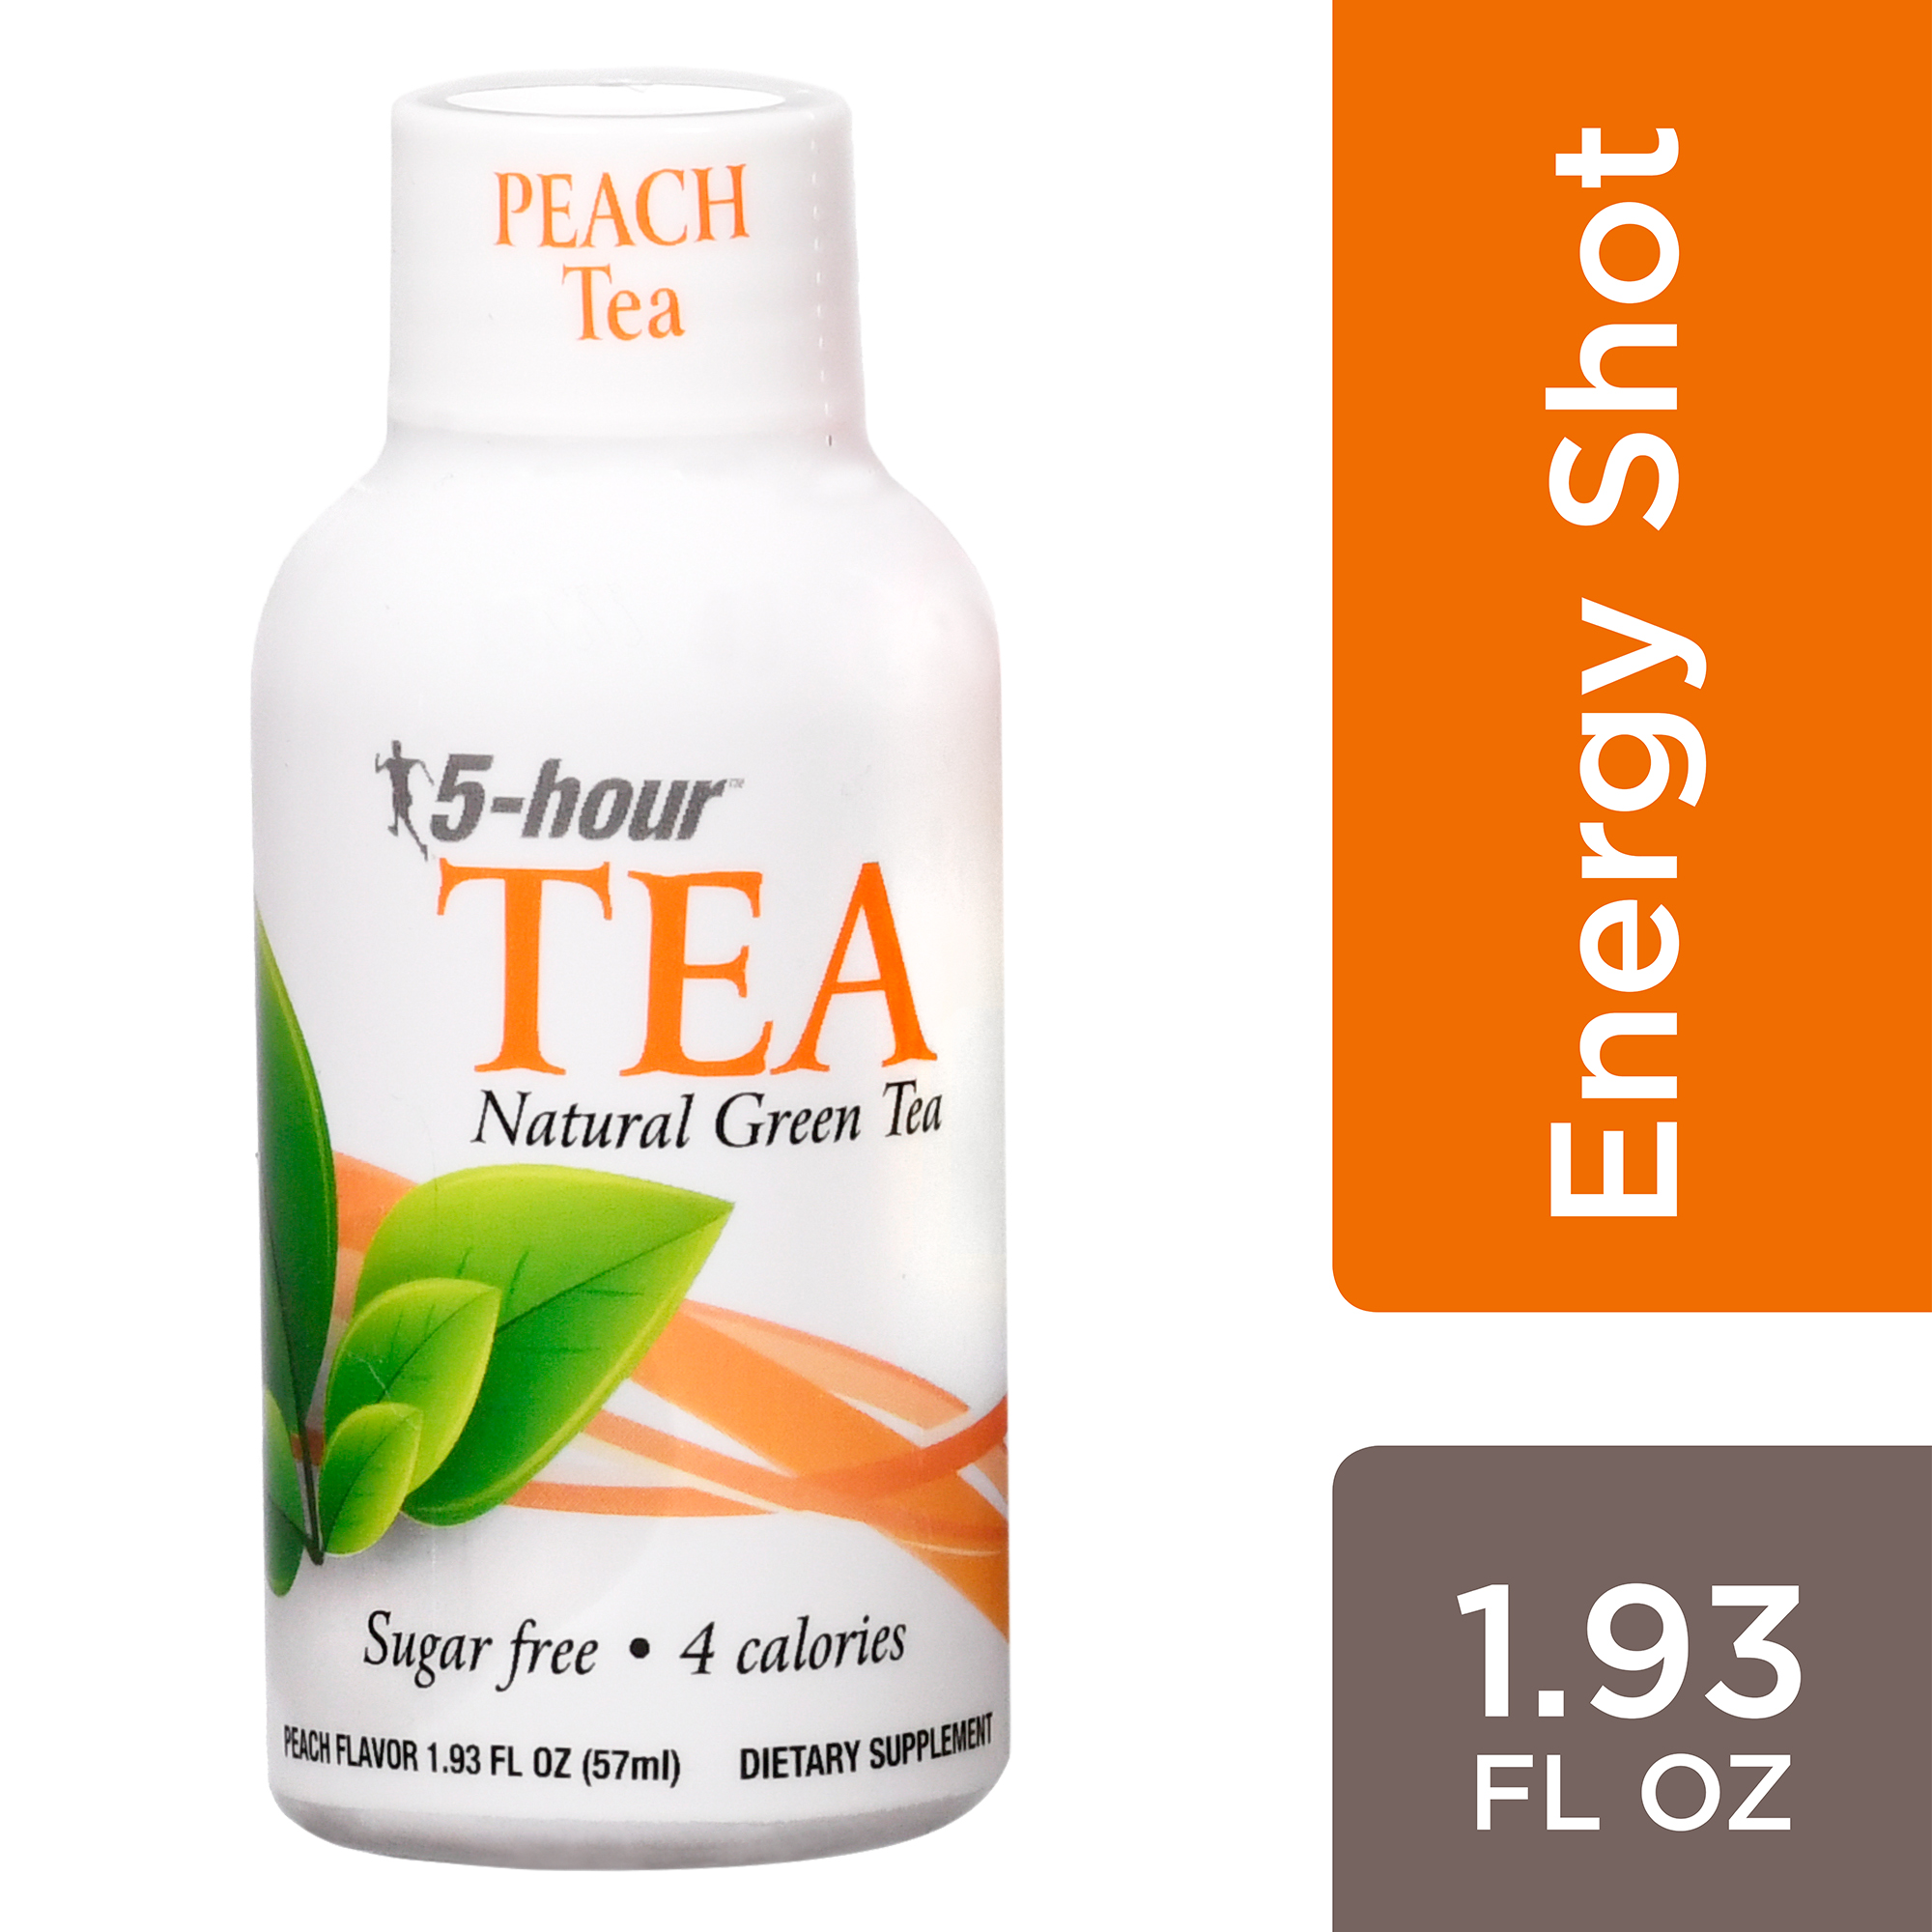 5-hour TEA™, Peach Tea Flavor, Low Calorie Single Energy Shot